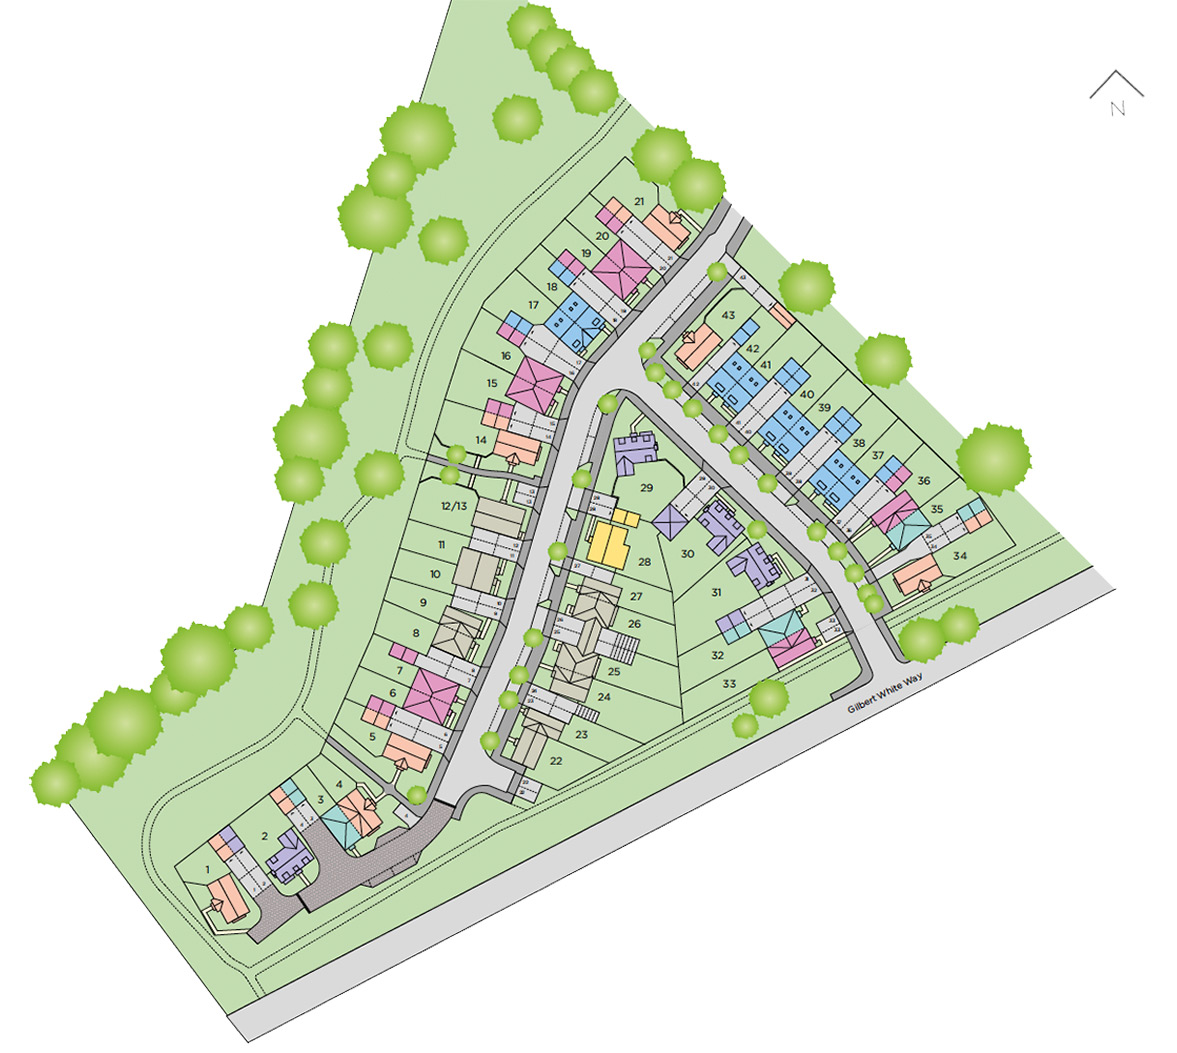 Plot 4 – The Thornberry Siteplan